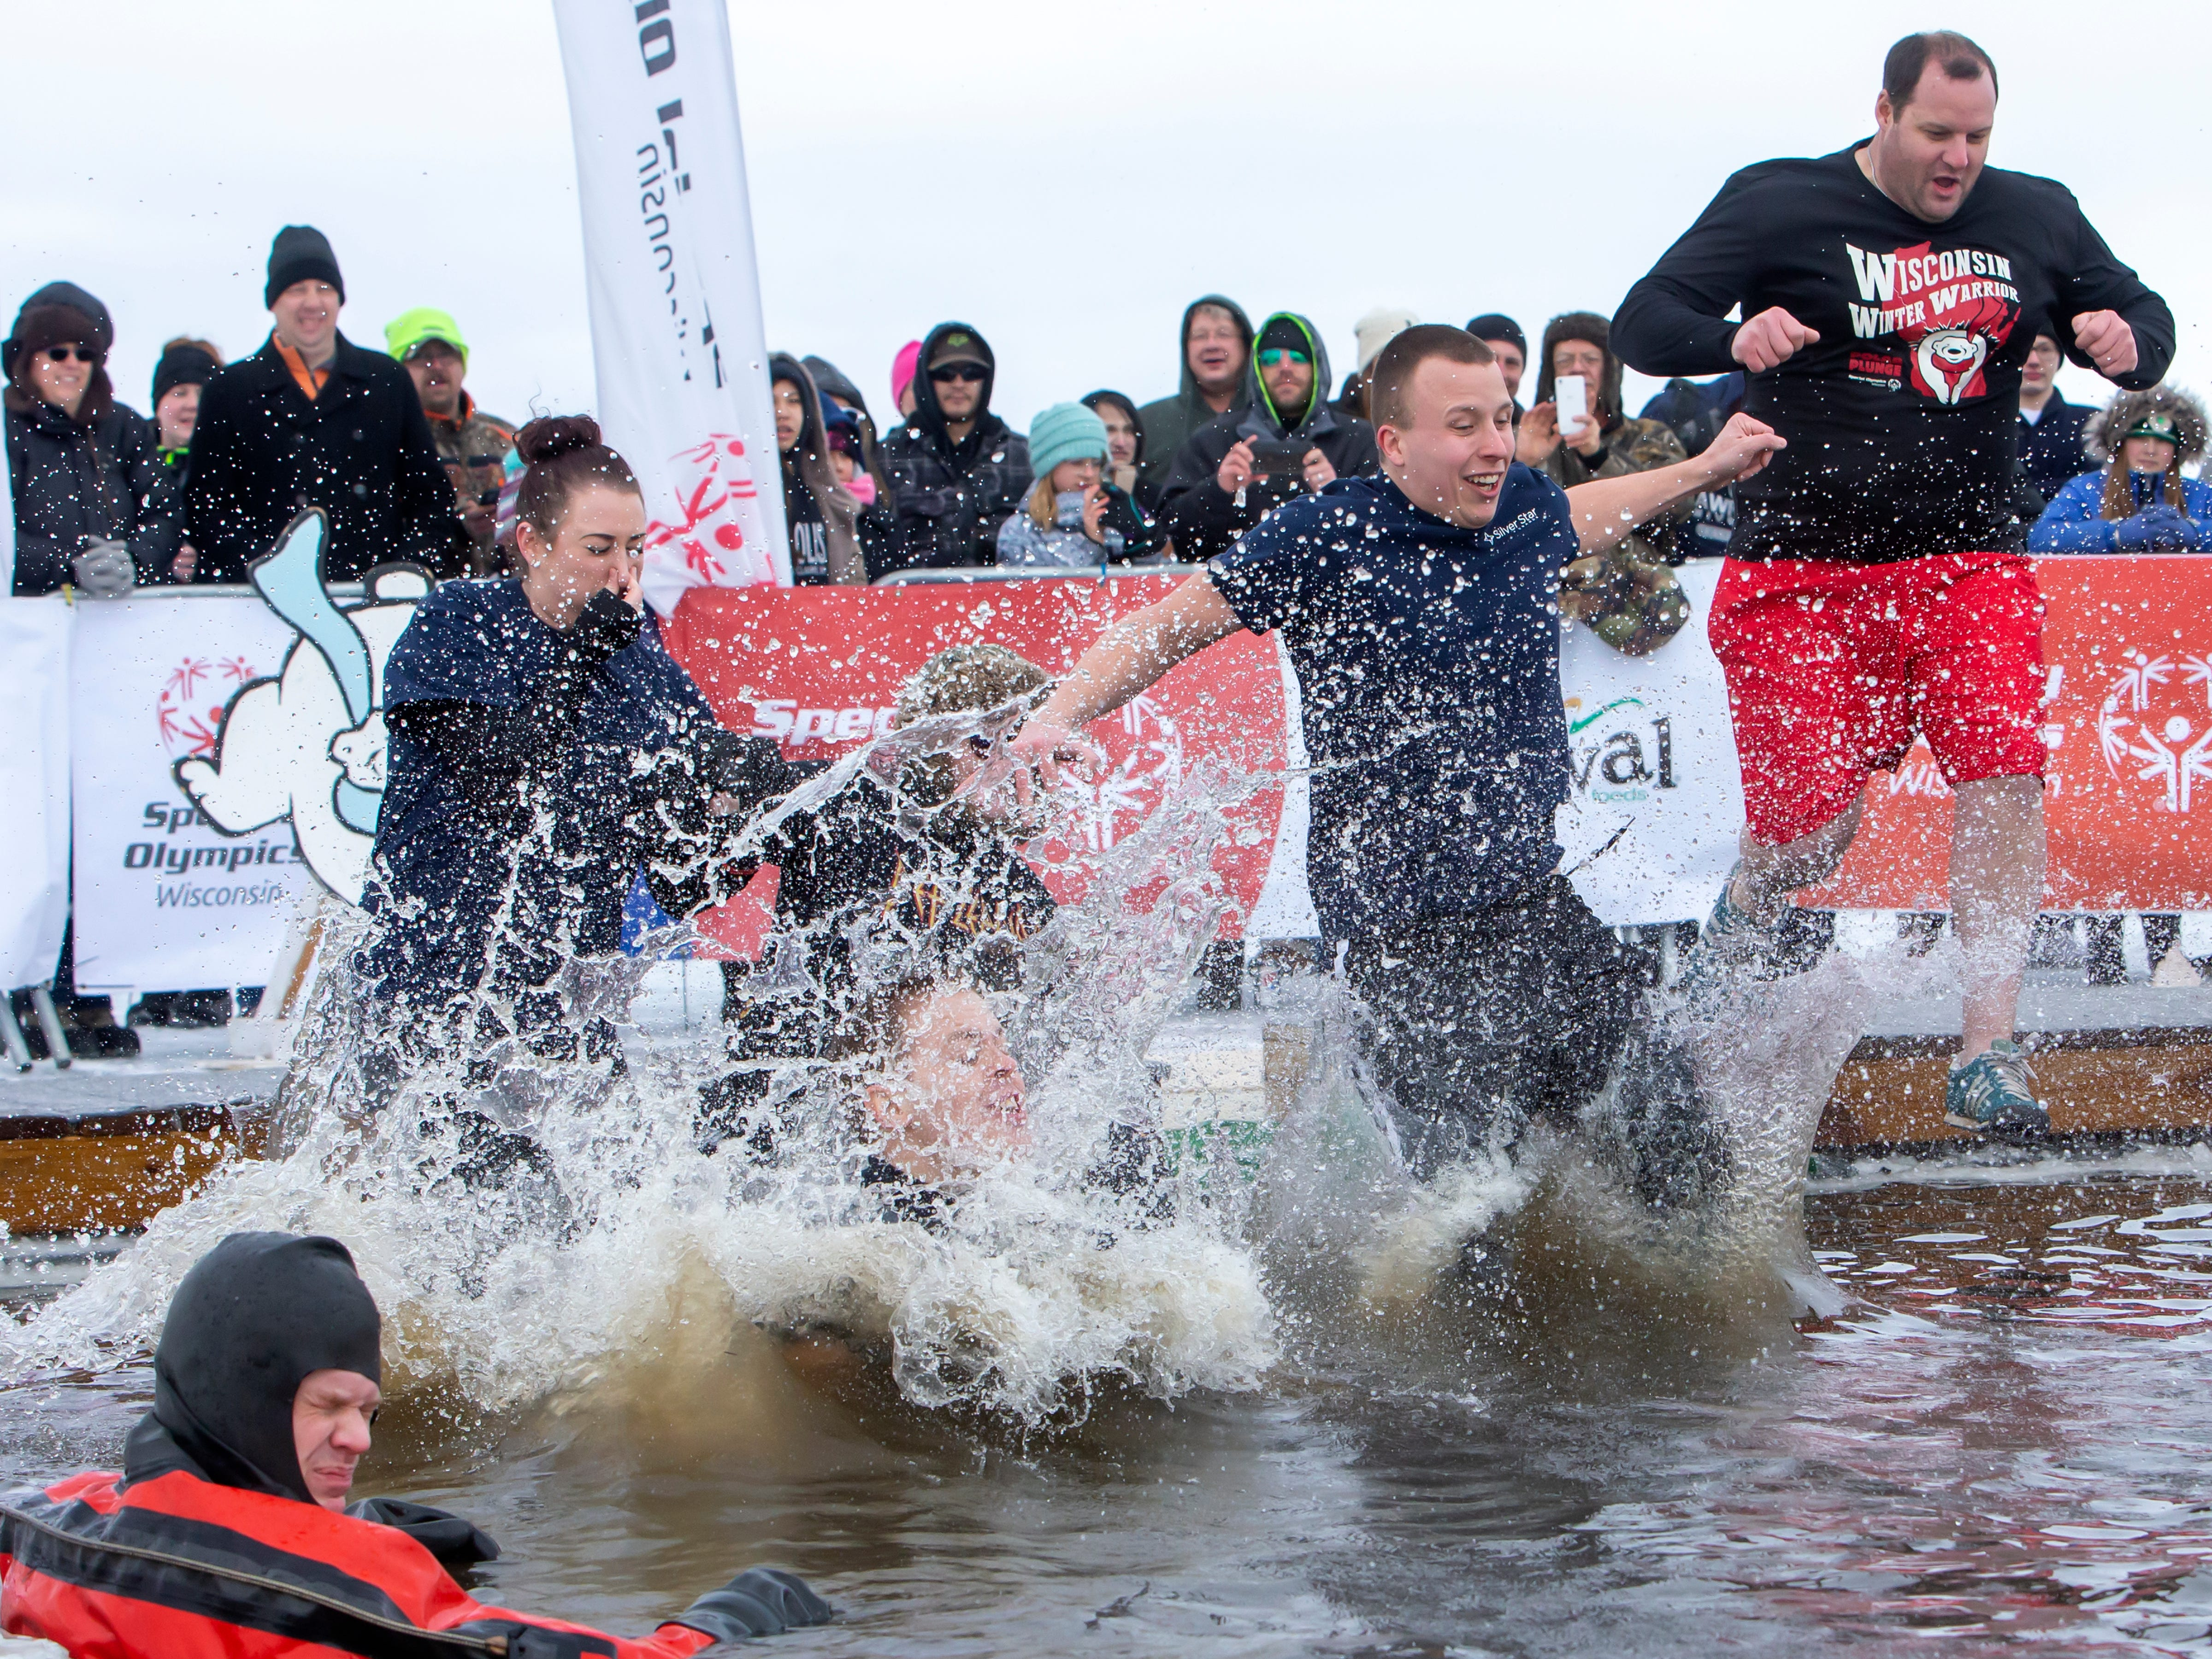 Groups of brave people participant in the Special Olympics Wisconsin Polar Plunge in Oshkosh, Wis., on Saturday, February 16, 2019, at Miller's Bay in Menominee Park.